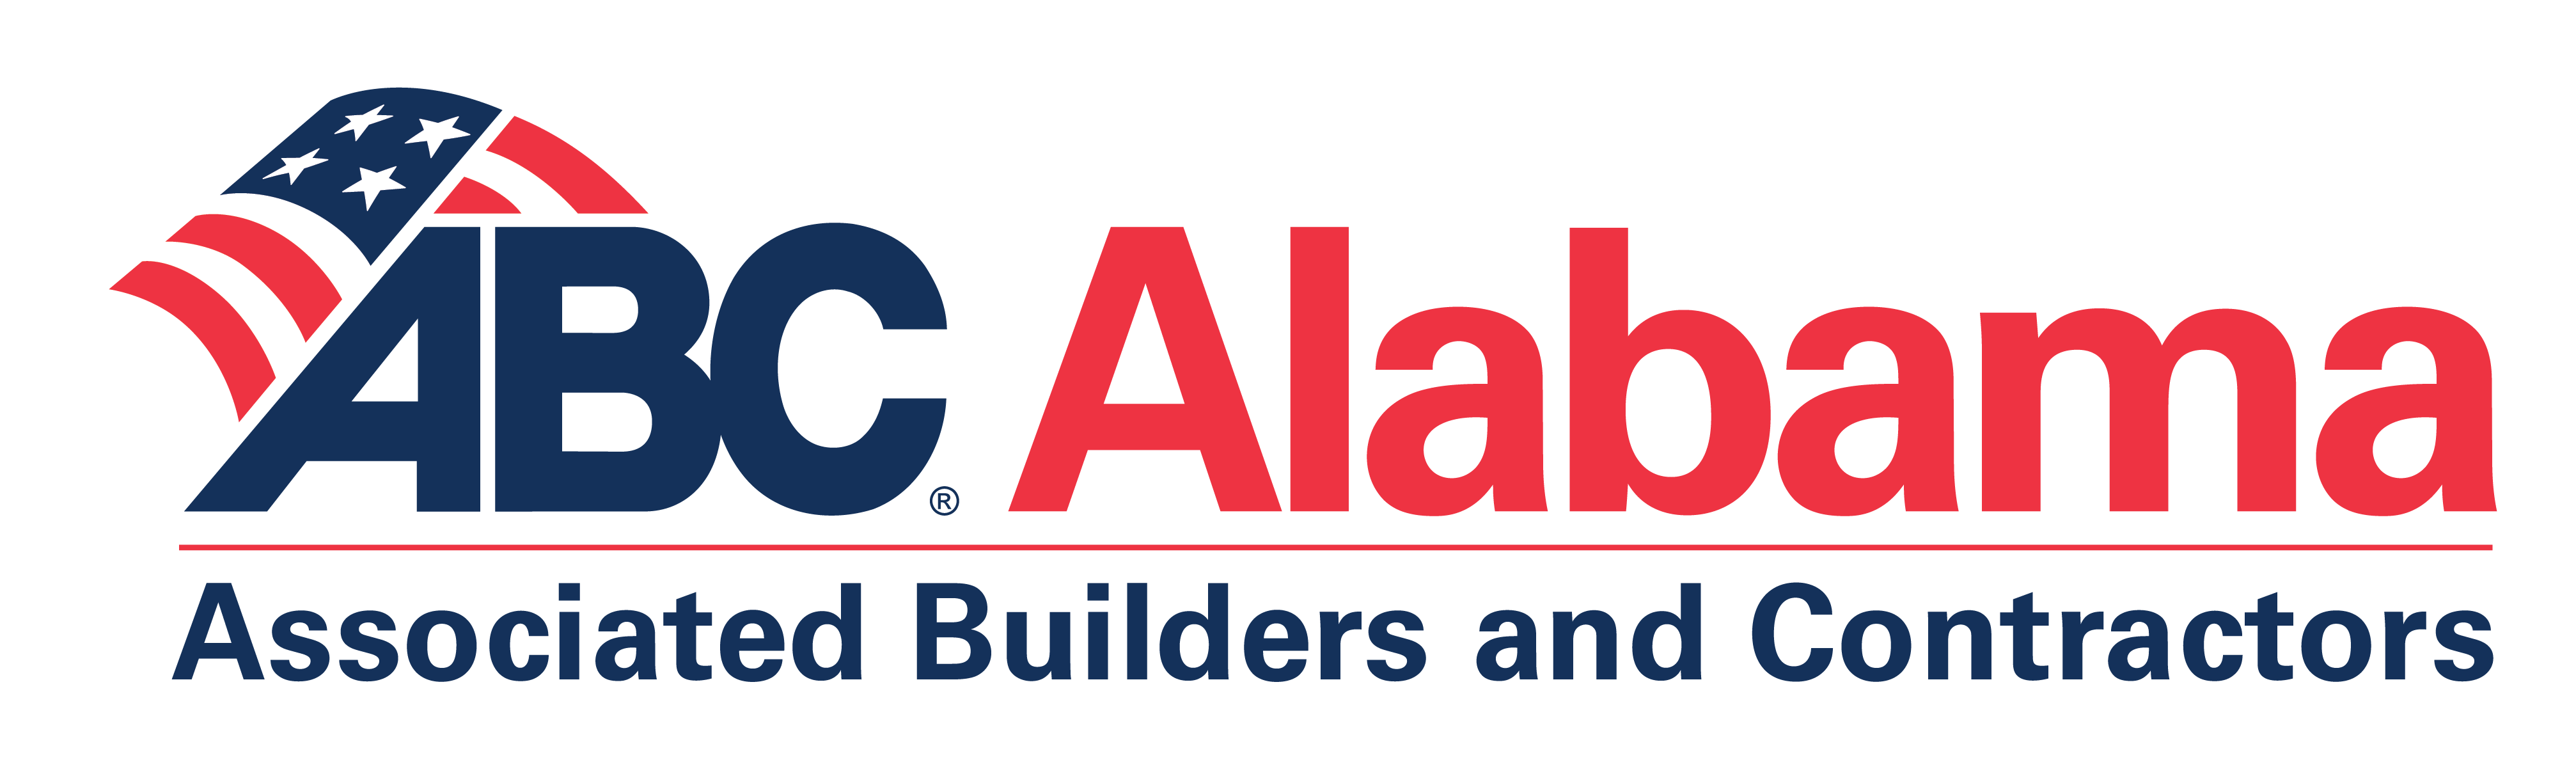 Associated Builders and Contractors, Inc. - Alabama Chapter